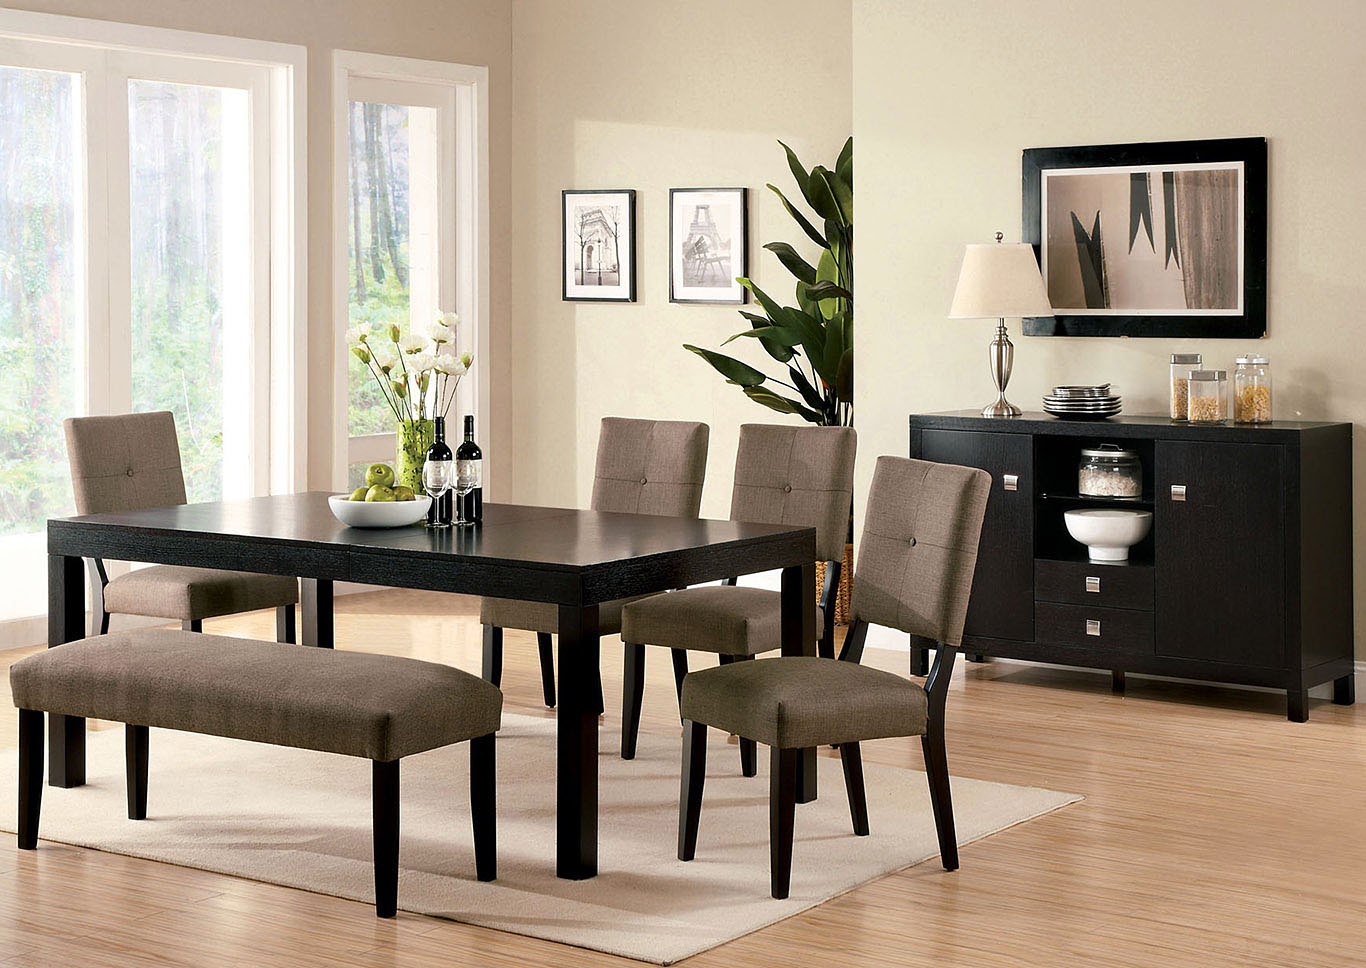 Bay Side I Espresso Dining Table W Bench And 4 ChairsFurniture Of